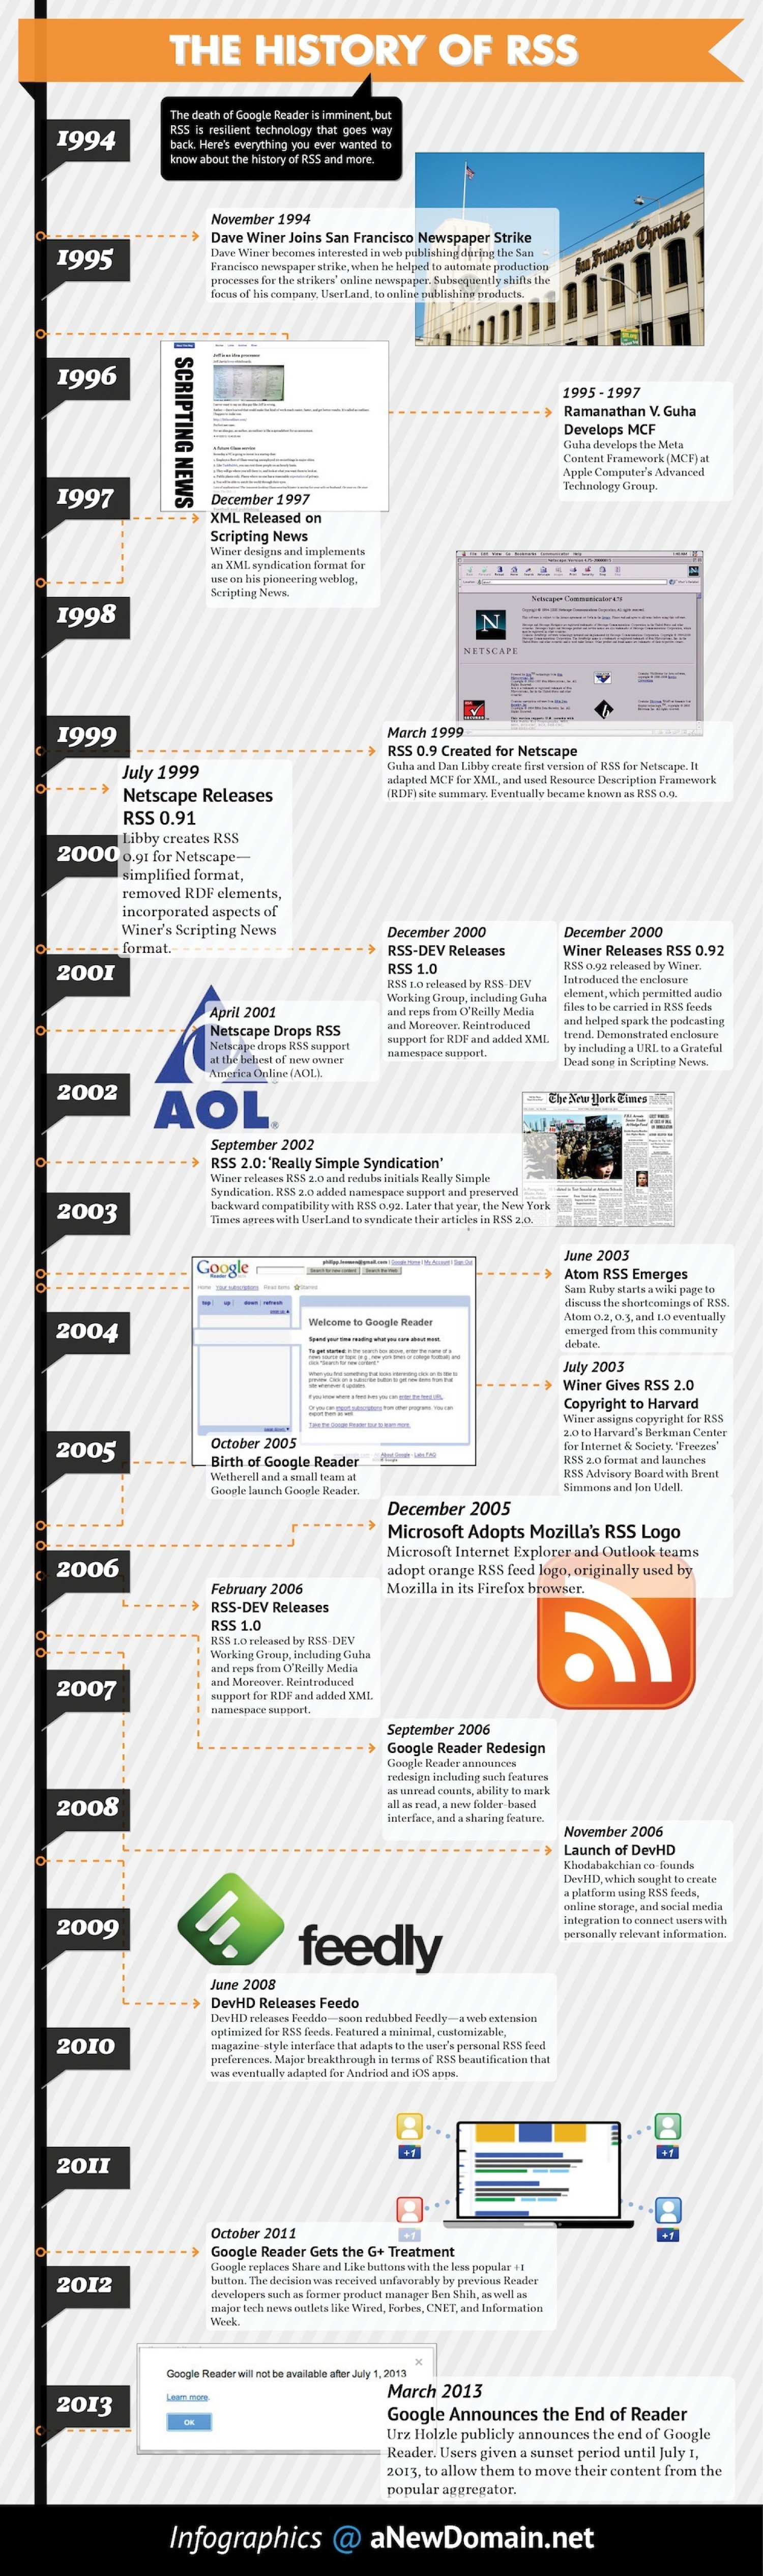 The History of RSS Infographic